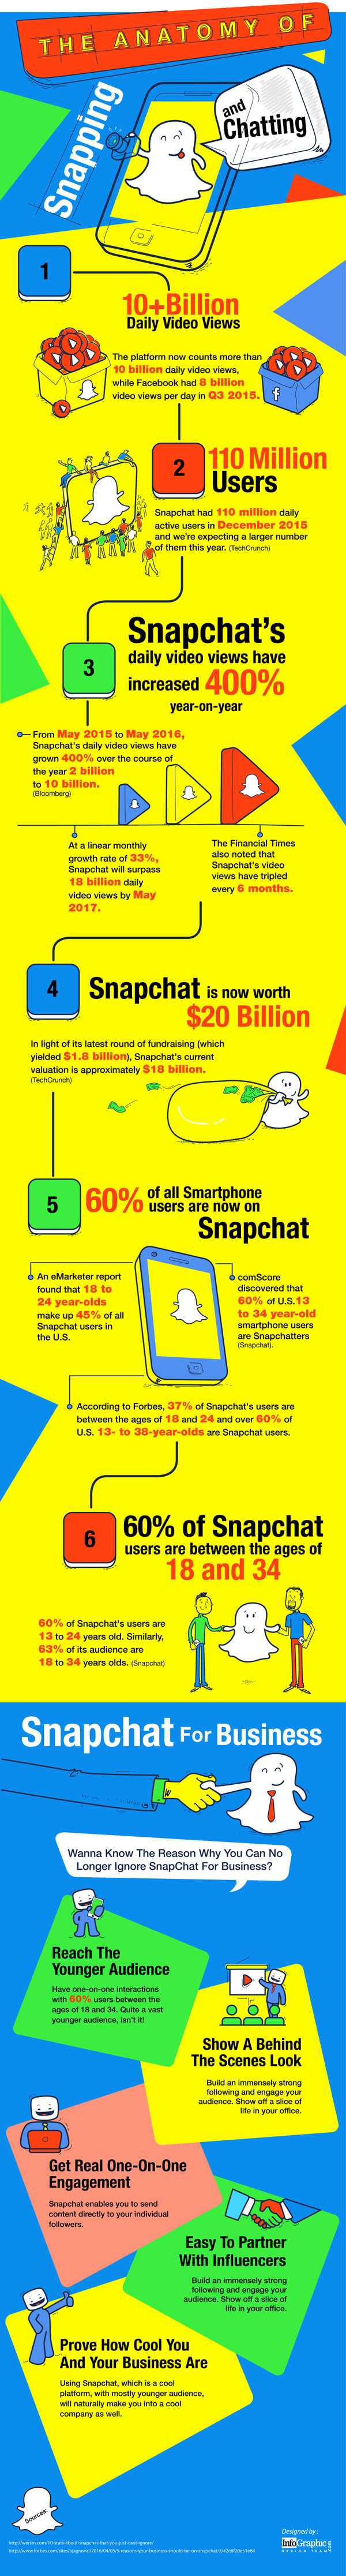 the-anatomy-of-snapping-and-chatting-infographic-plaza